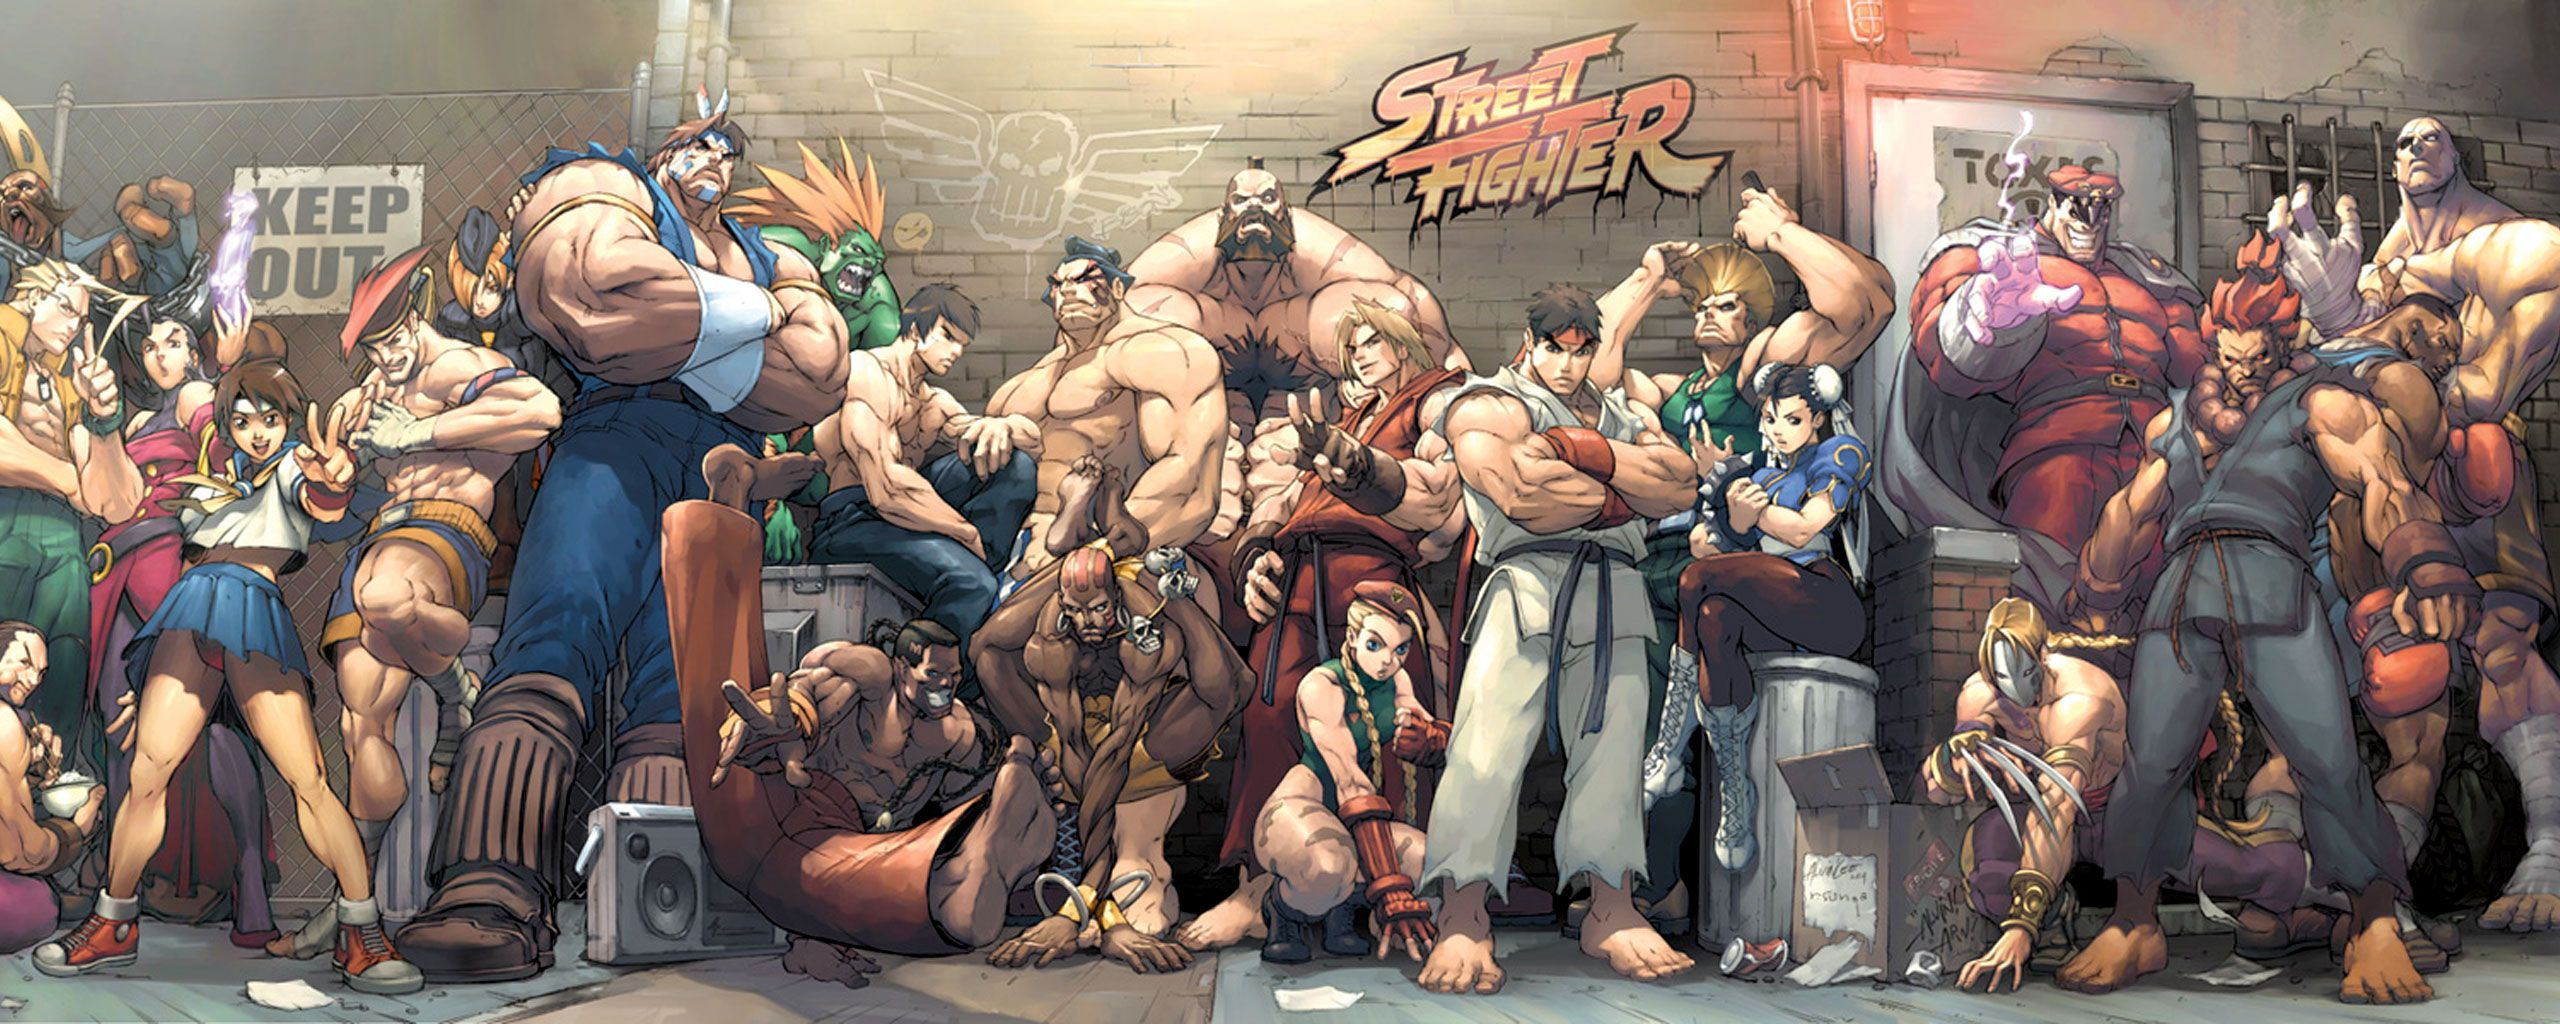 Collection of Street Fighter Wallpaper on HDWallpapers